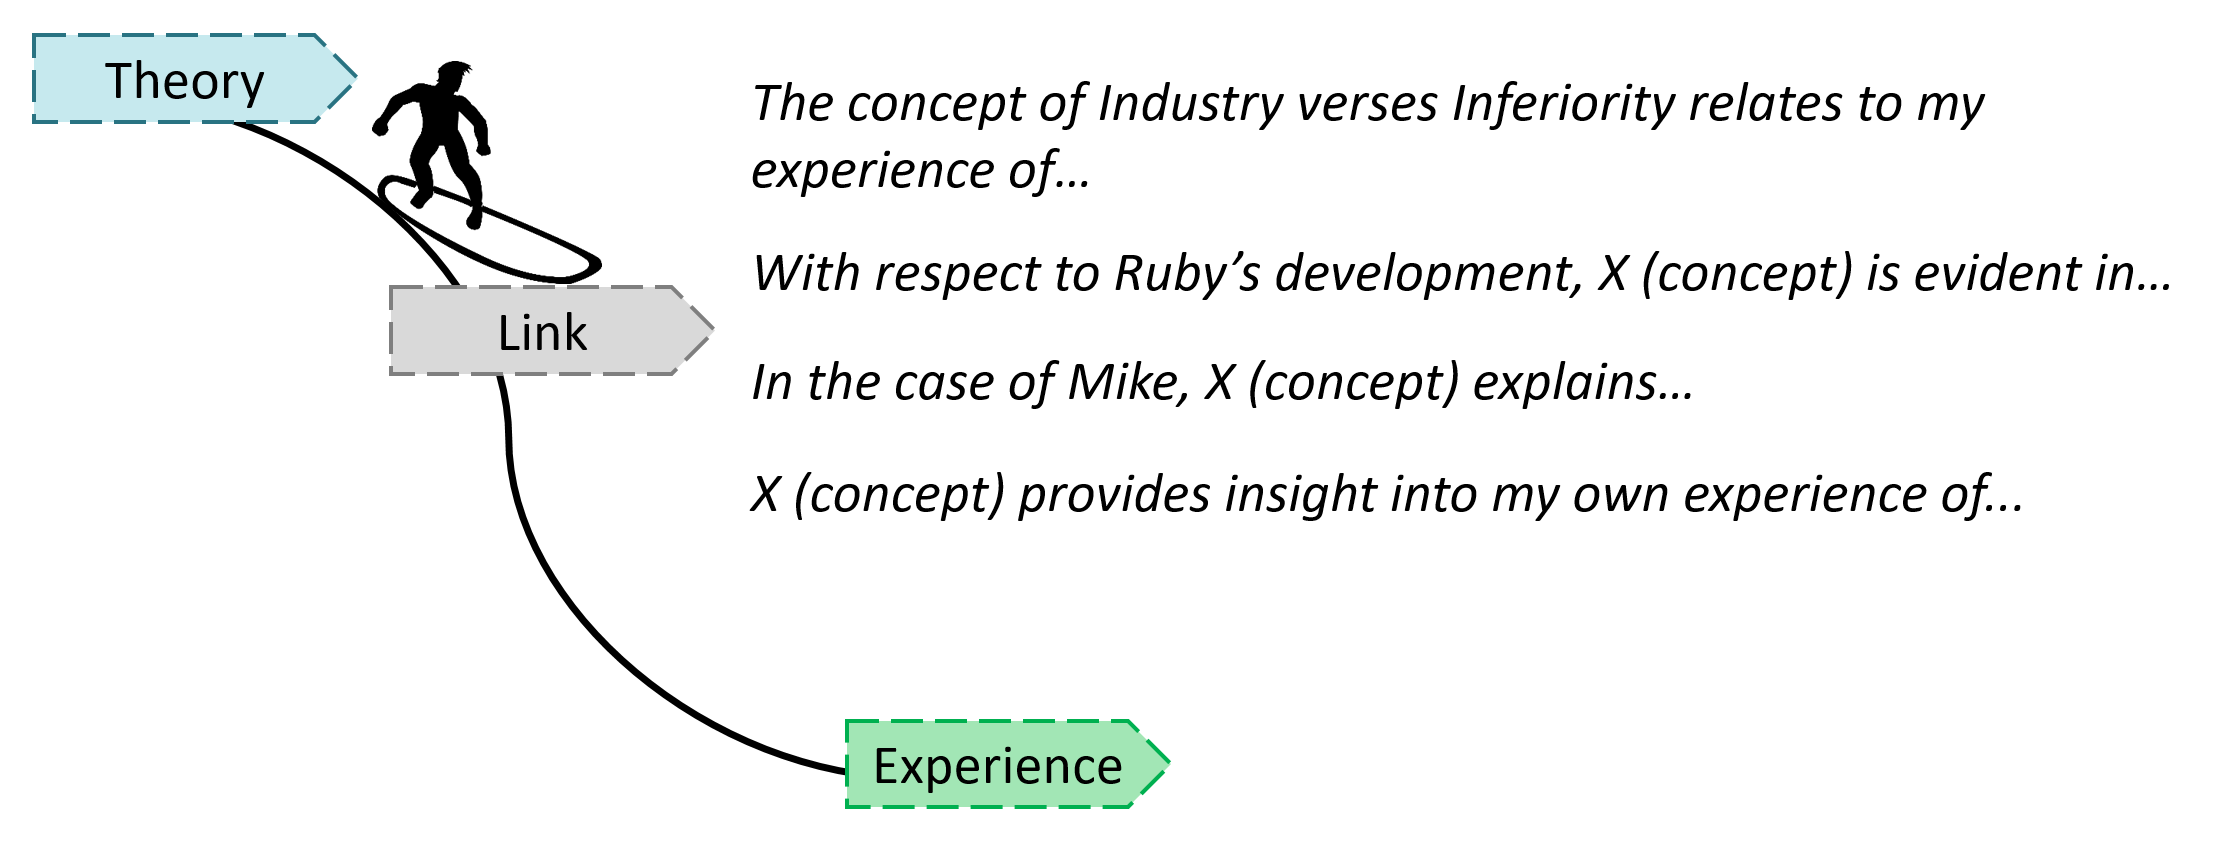 Linking theory to experience